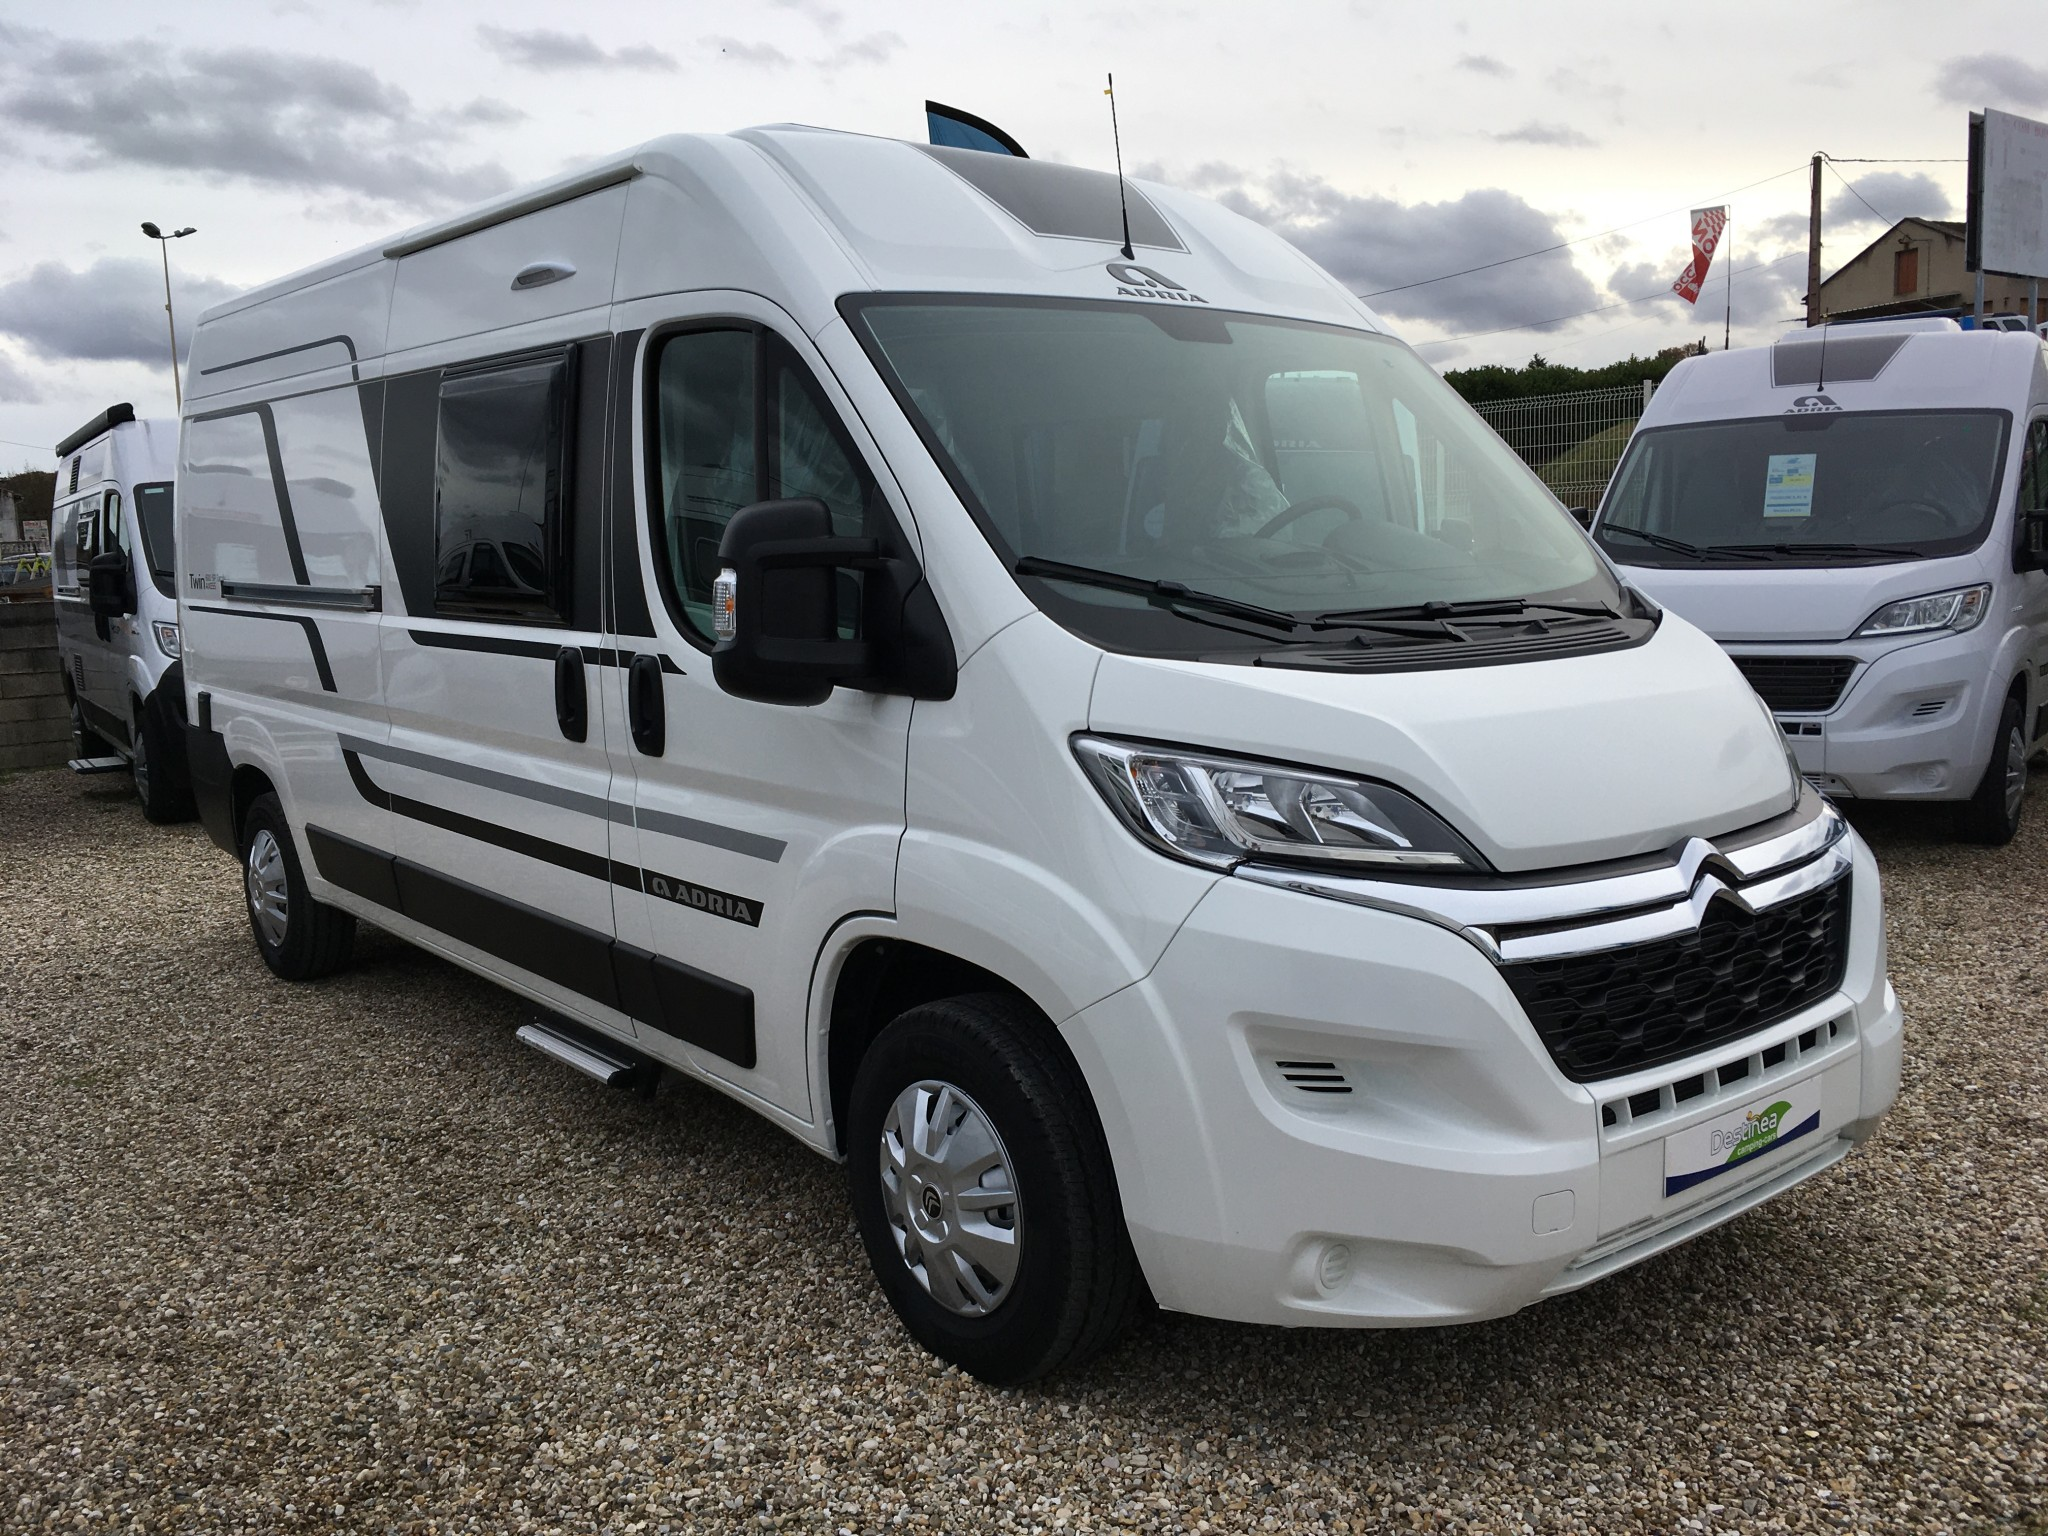 Camping-car ADRIA TWIN 600 SP FAMILY AXESS